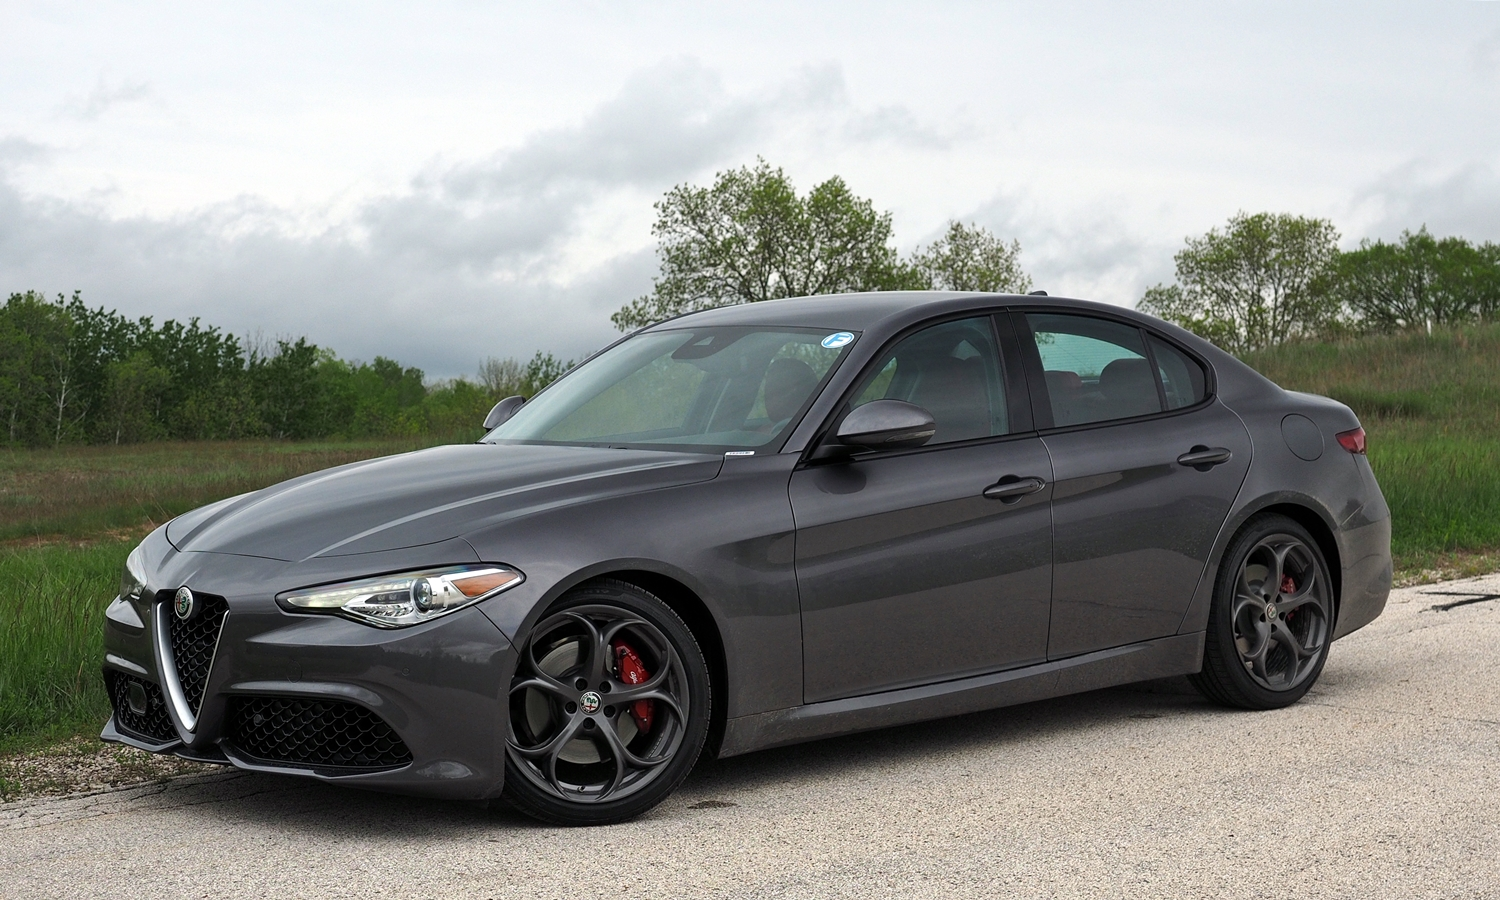 2018 Alfa Romeo Giulia Review Ratings Specs Prices and